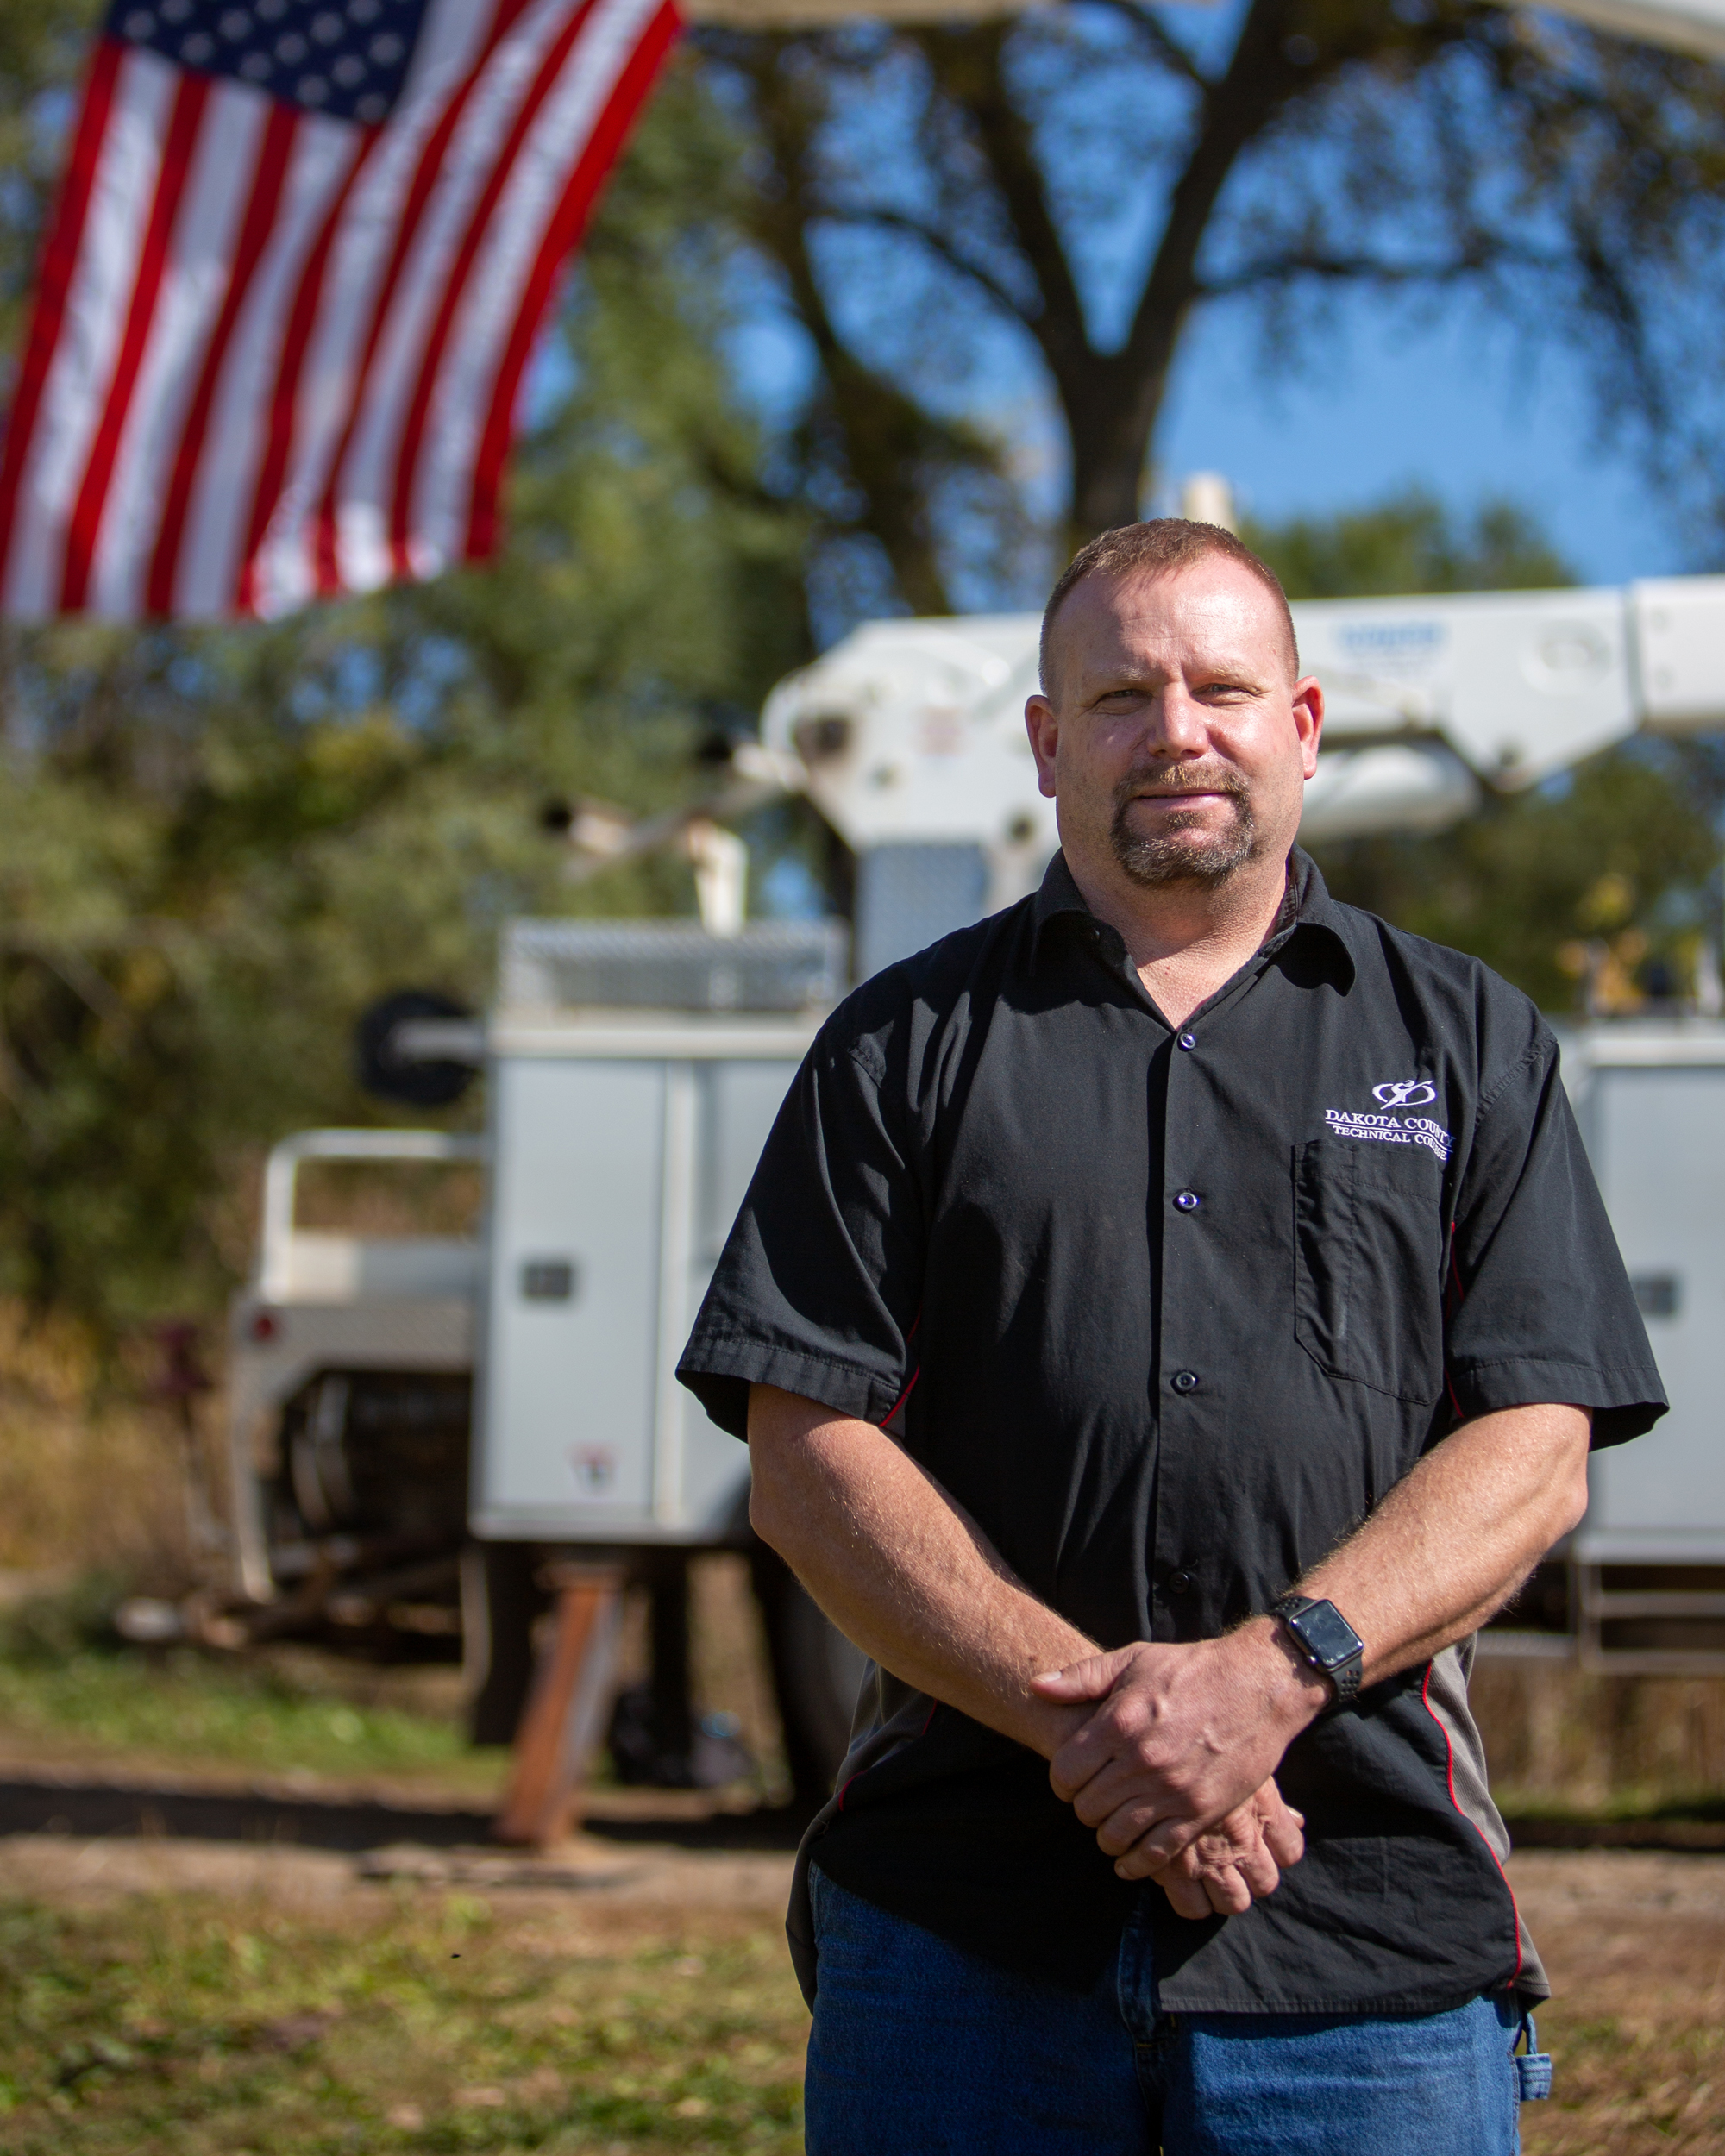 Scott Anderson, U.S. Air Force veteran, Automotive Technician Faculty